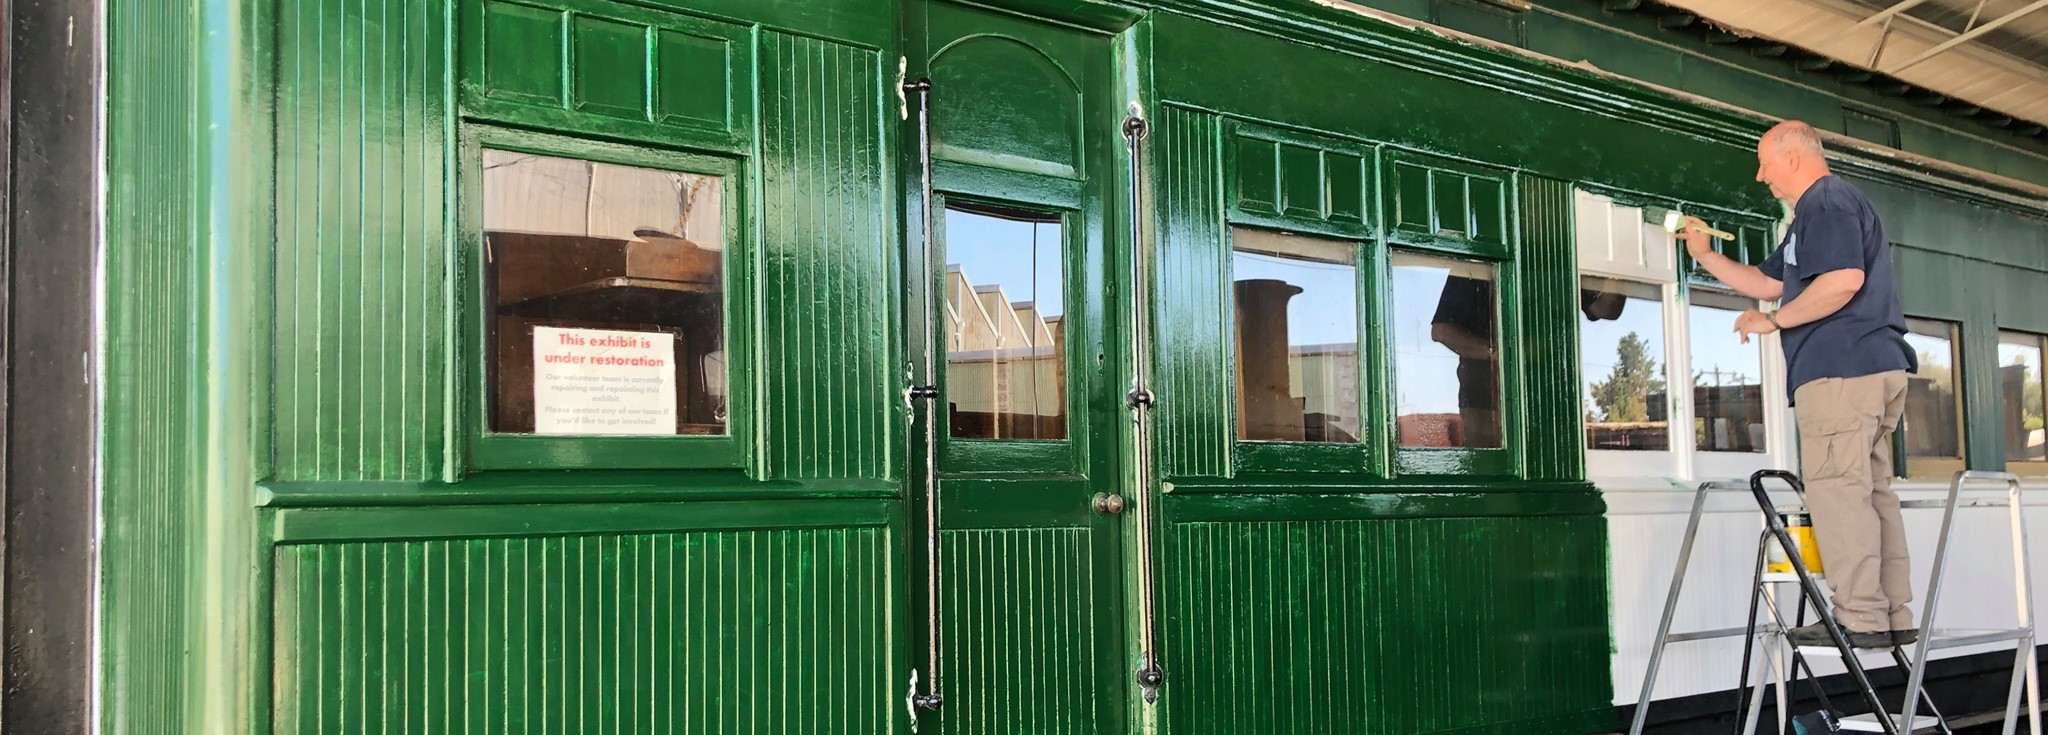 Man repainting side of green carriage